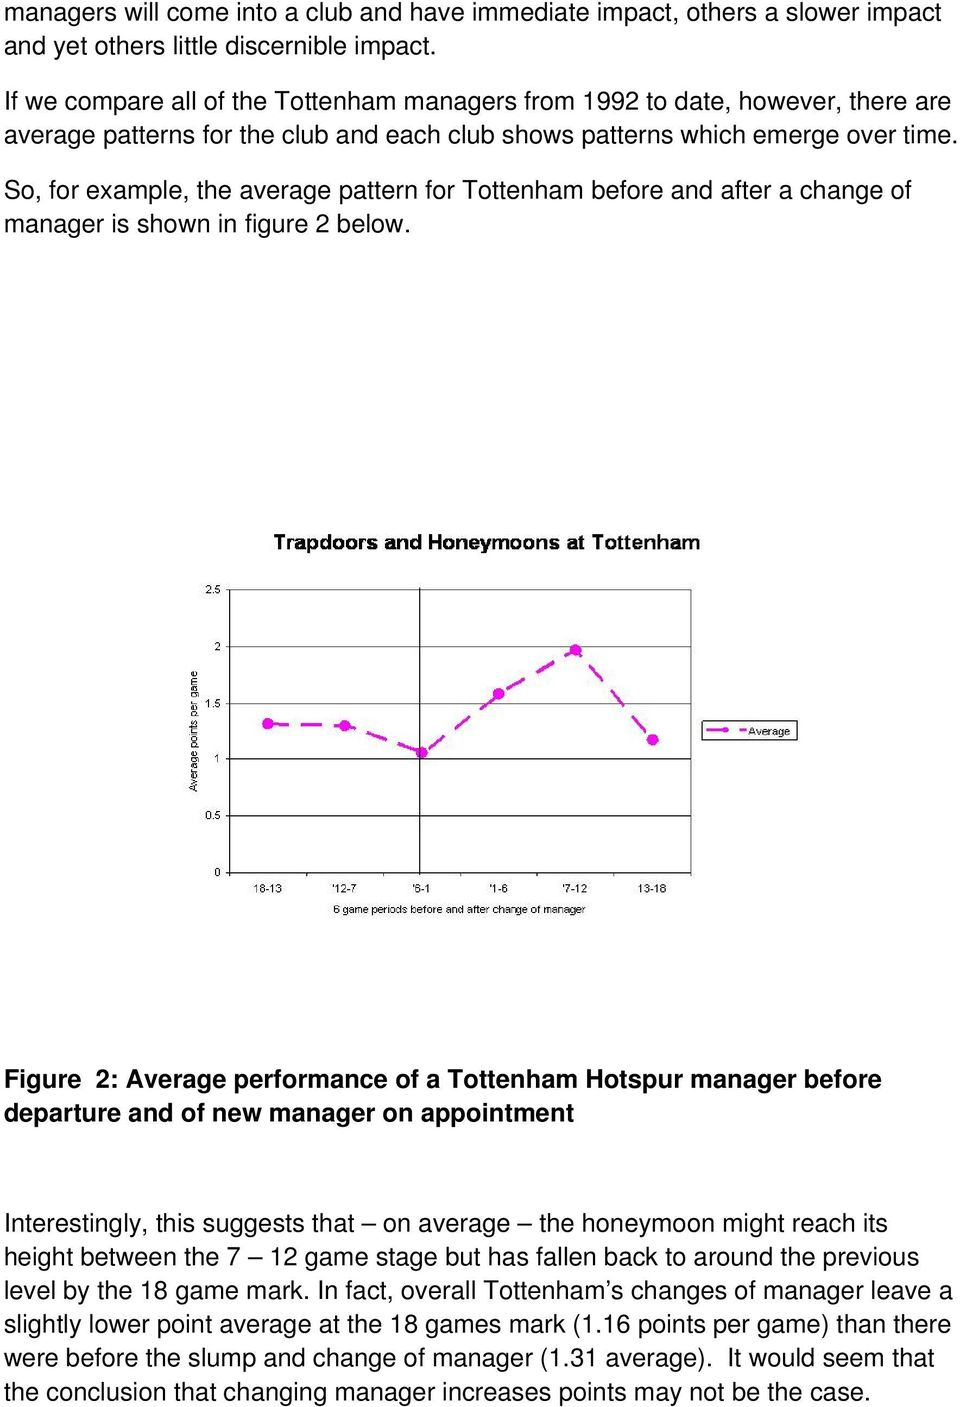 So, for example, the average pattern for Tottenham before and after a change of manager is shown in figure 2 below.